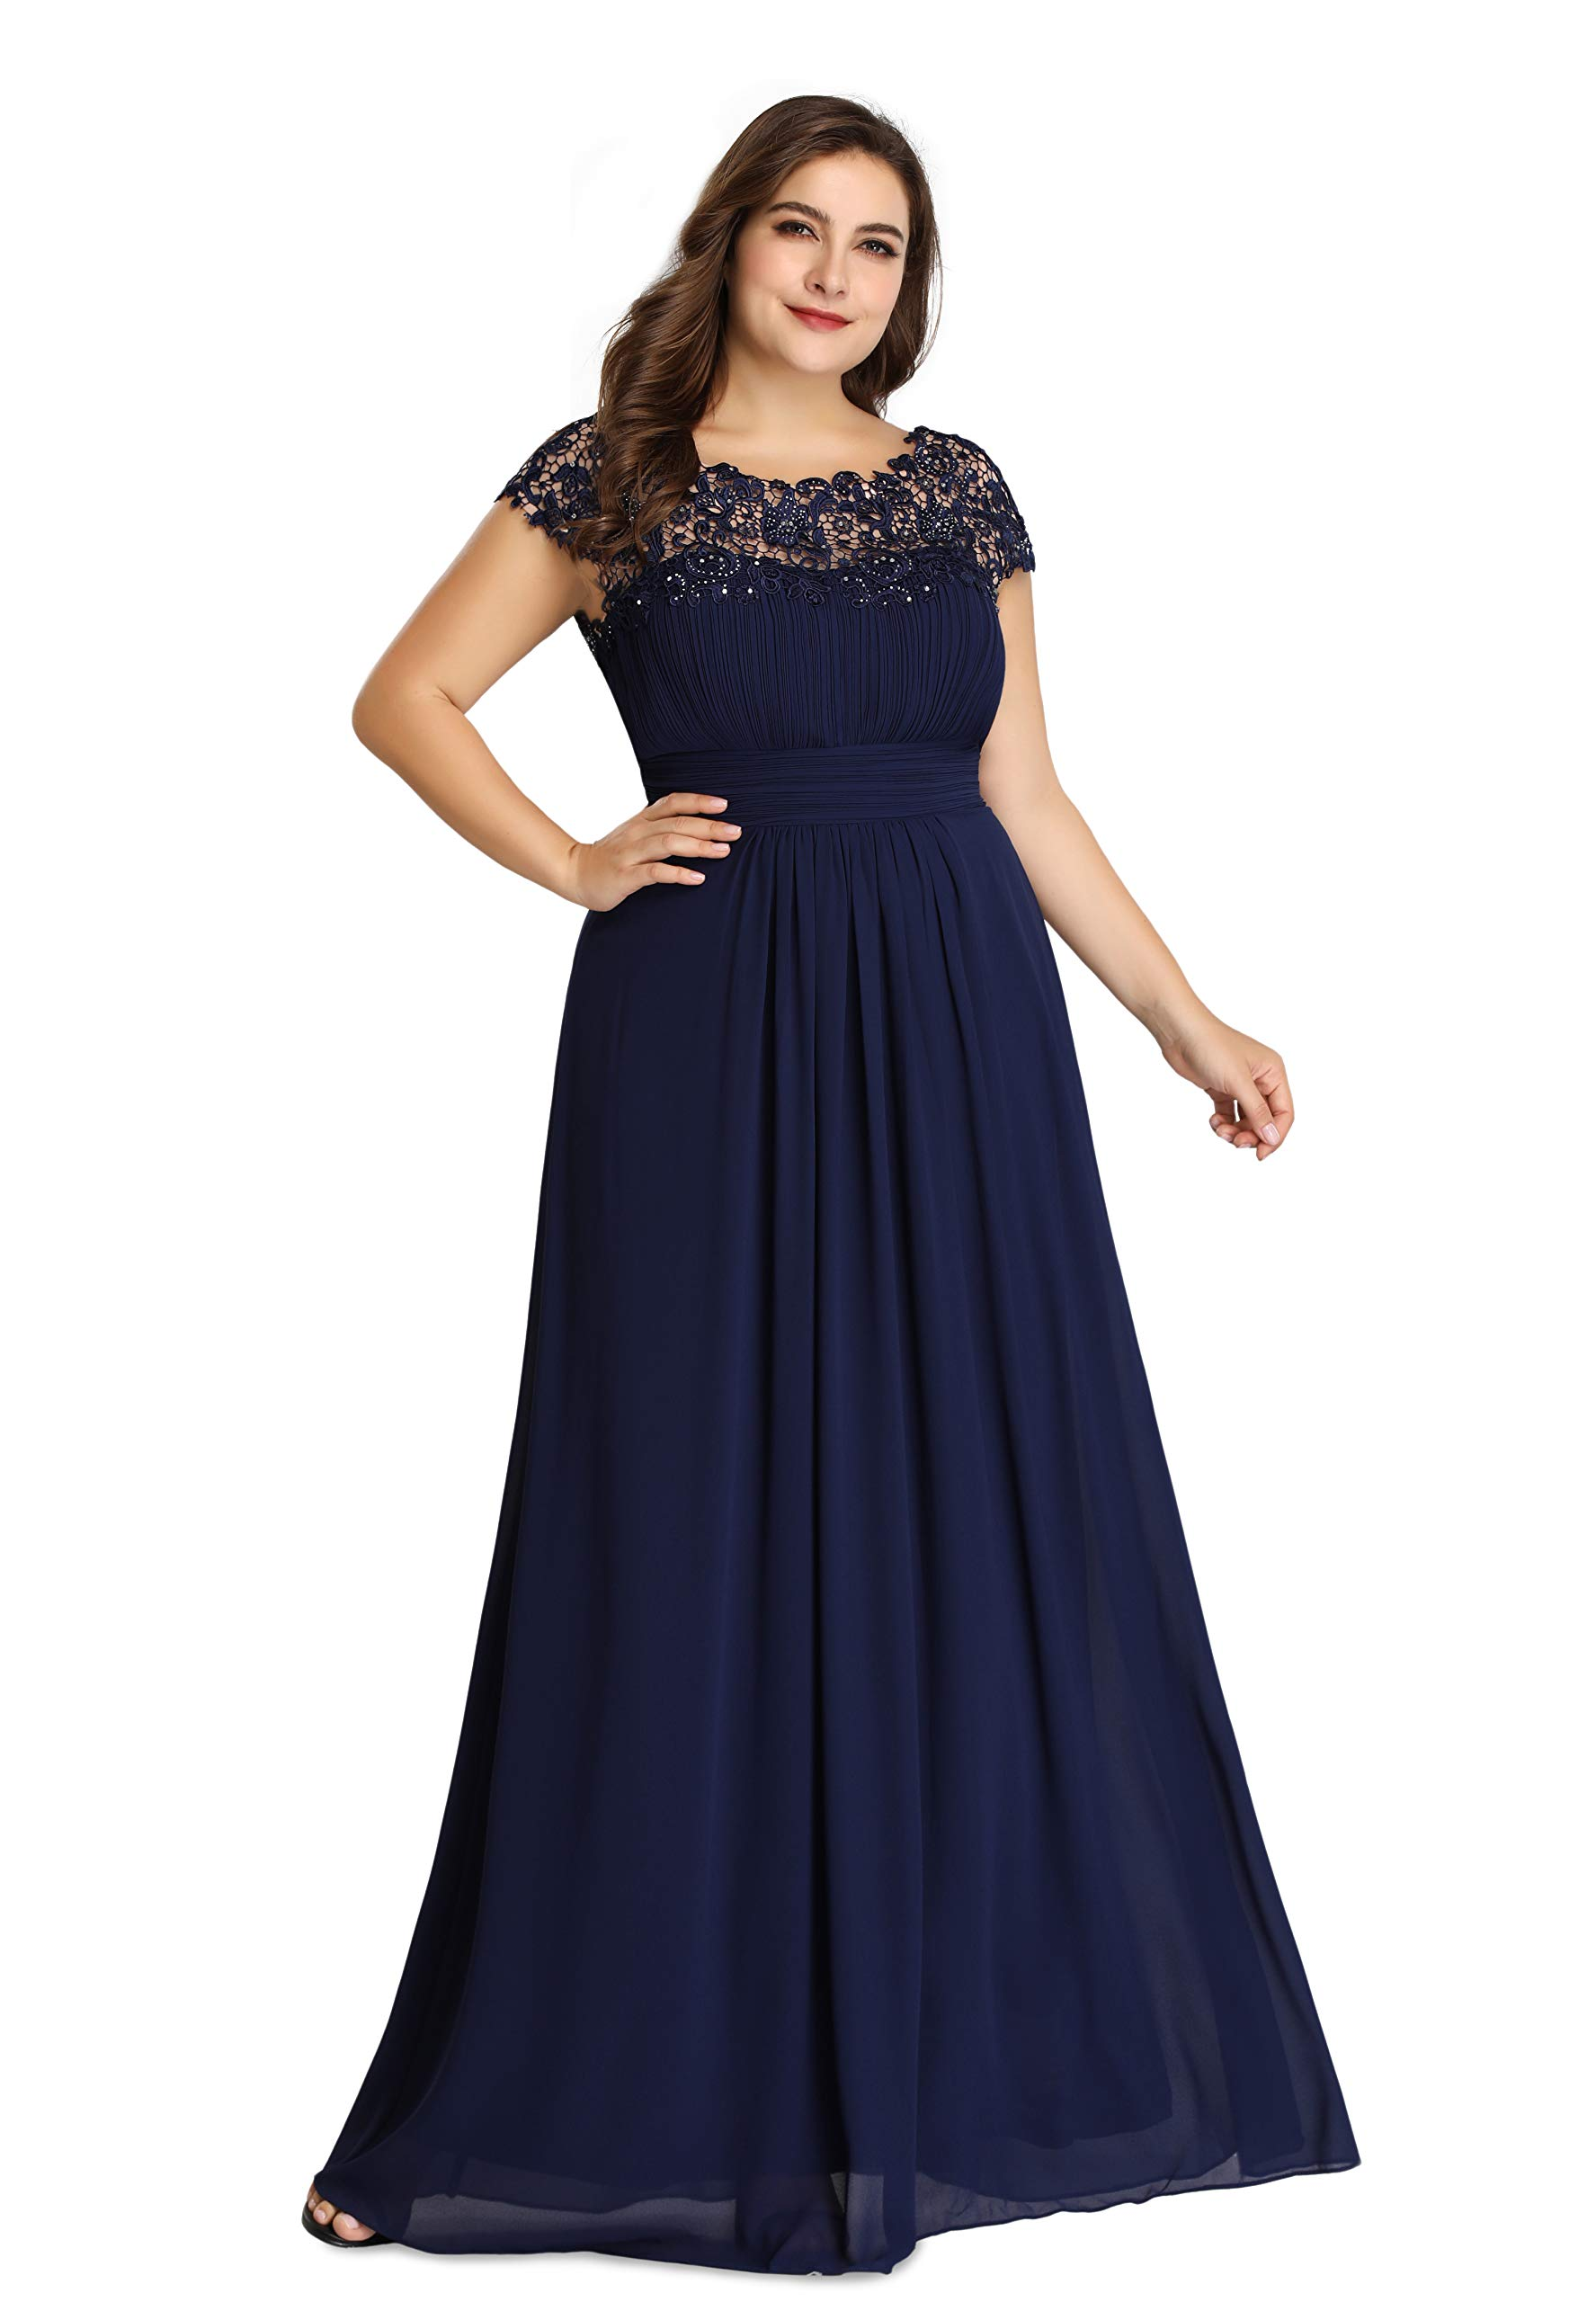 Ever-Pretty Womens A-Line Lace Plus Size Mother of The Groom Dresses for  Women Navy Blue US 18